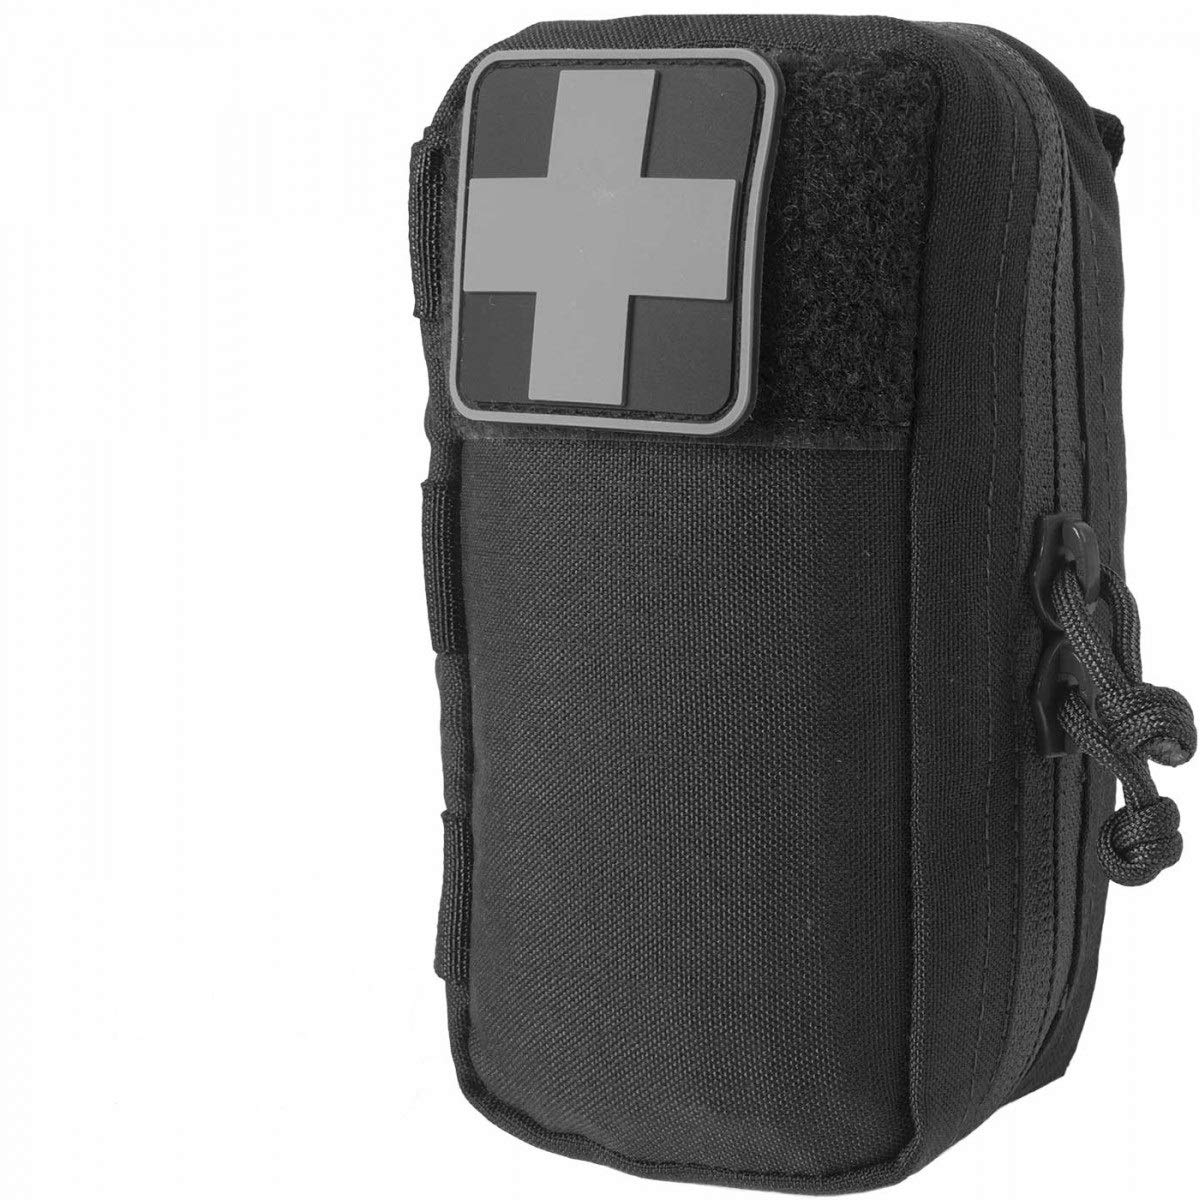 M-FAK Mini First AId Kit for Law Enforcement w/CAT Tourniquet (Black) by nar